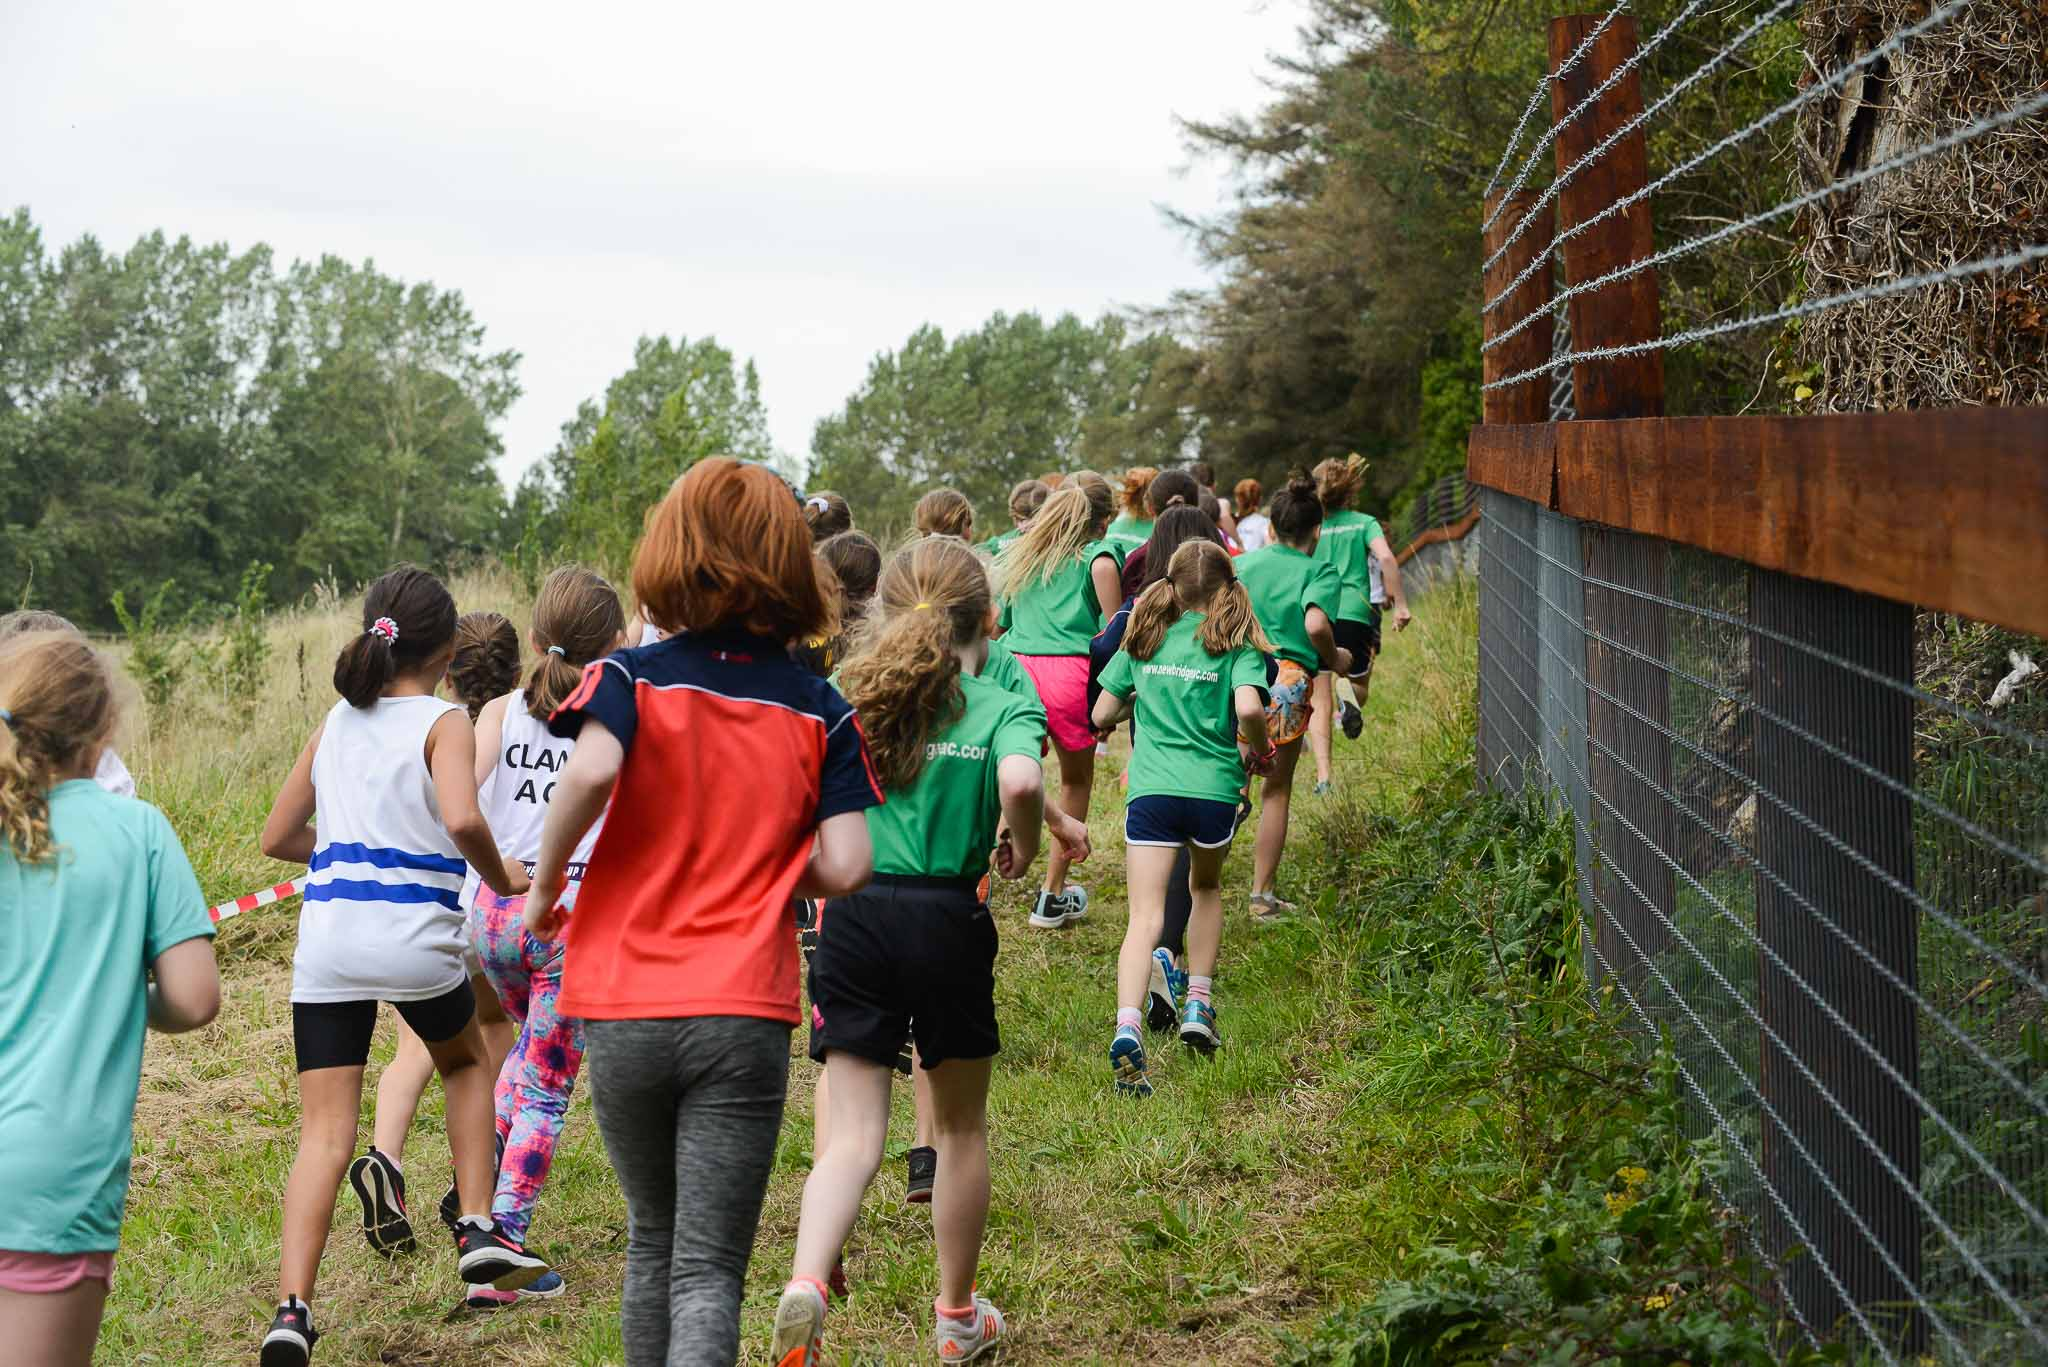 Juvenile Cross Country Season 2019